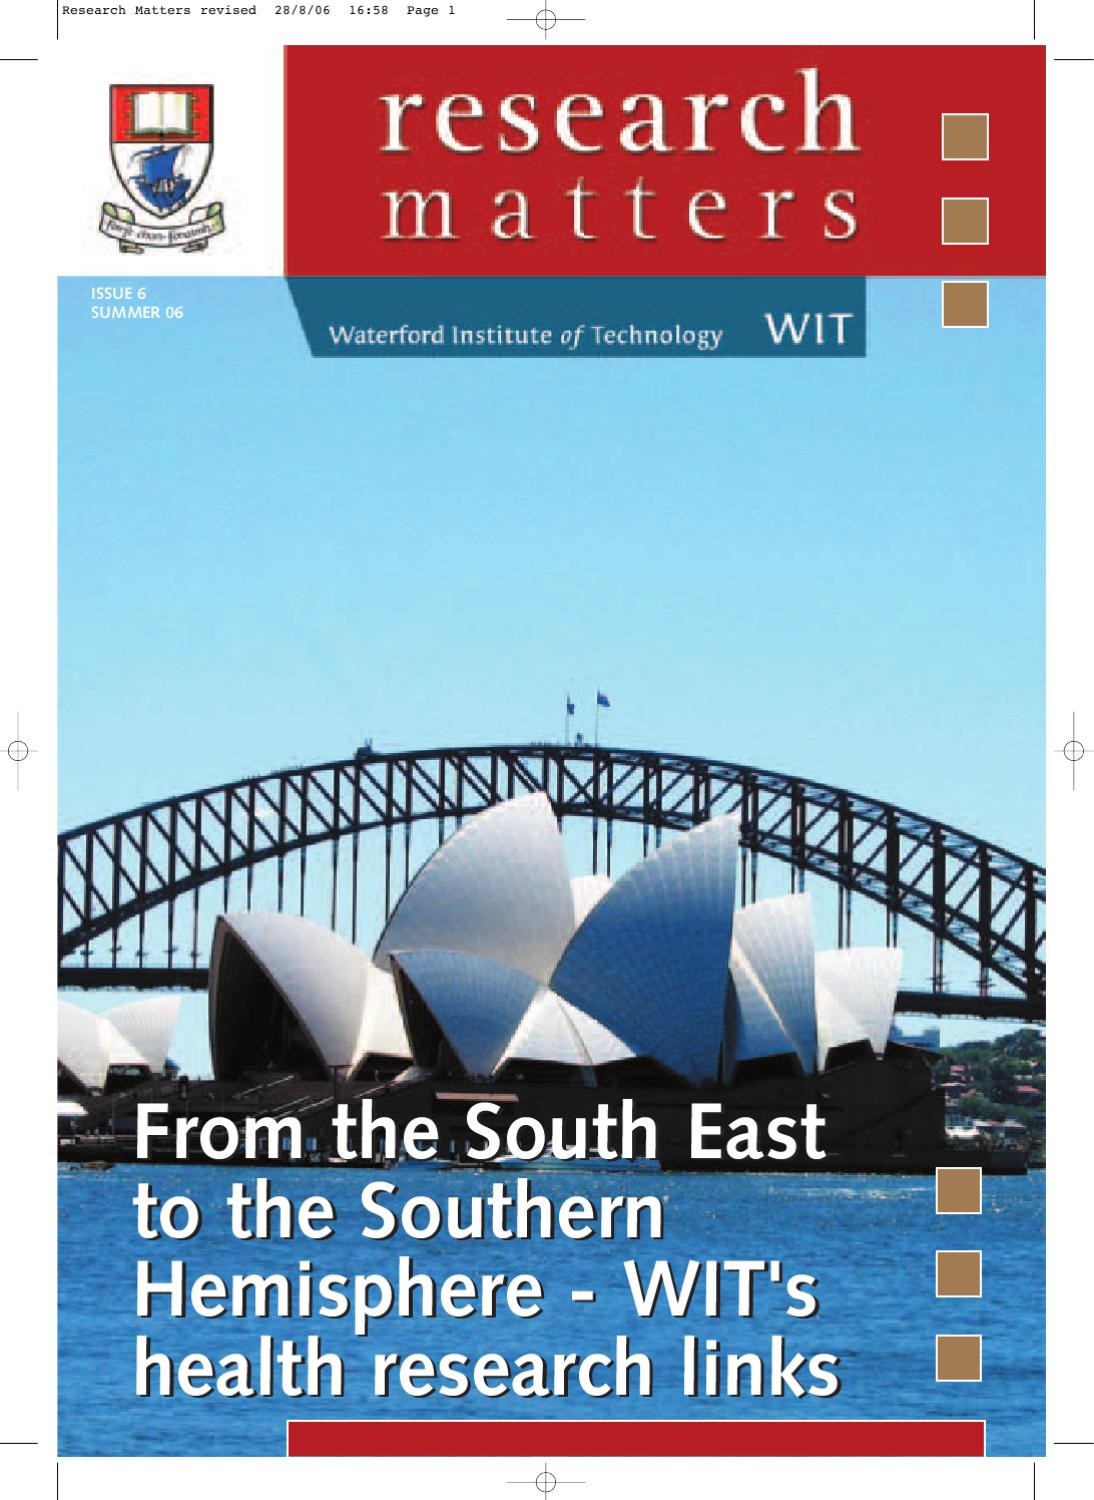 Research Matters Issue 6 - Summer 2006 by Waterford